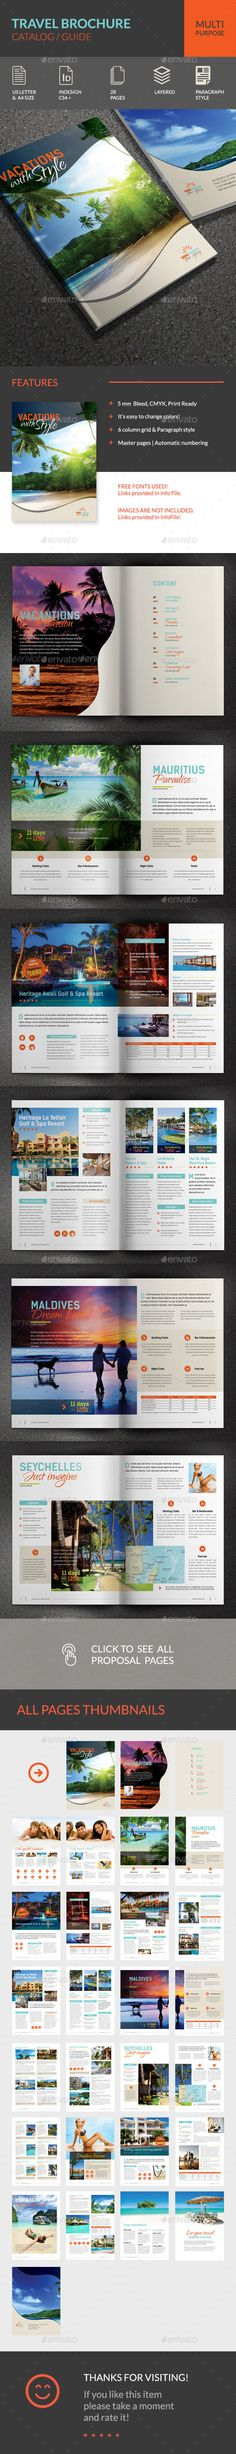 Travel Brochure Catalog InDesign Template v6 Indesign templates - travel proposal template